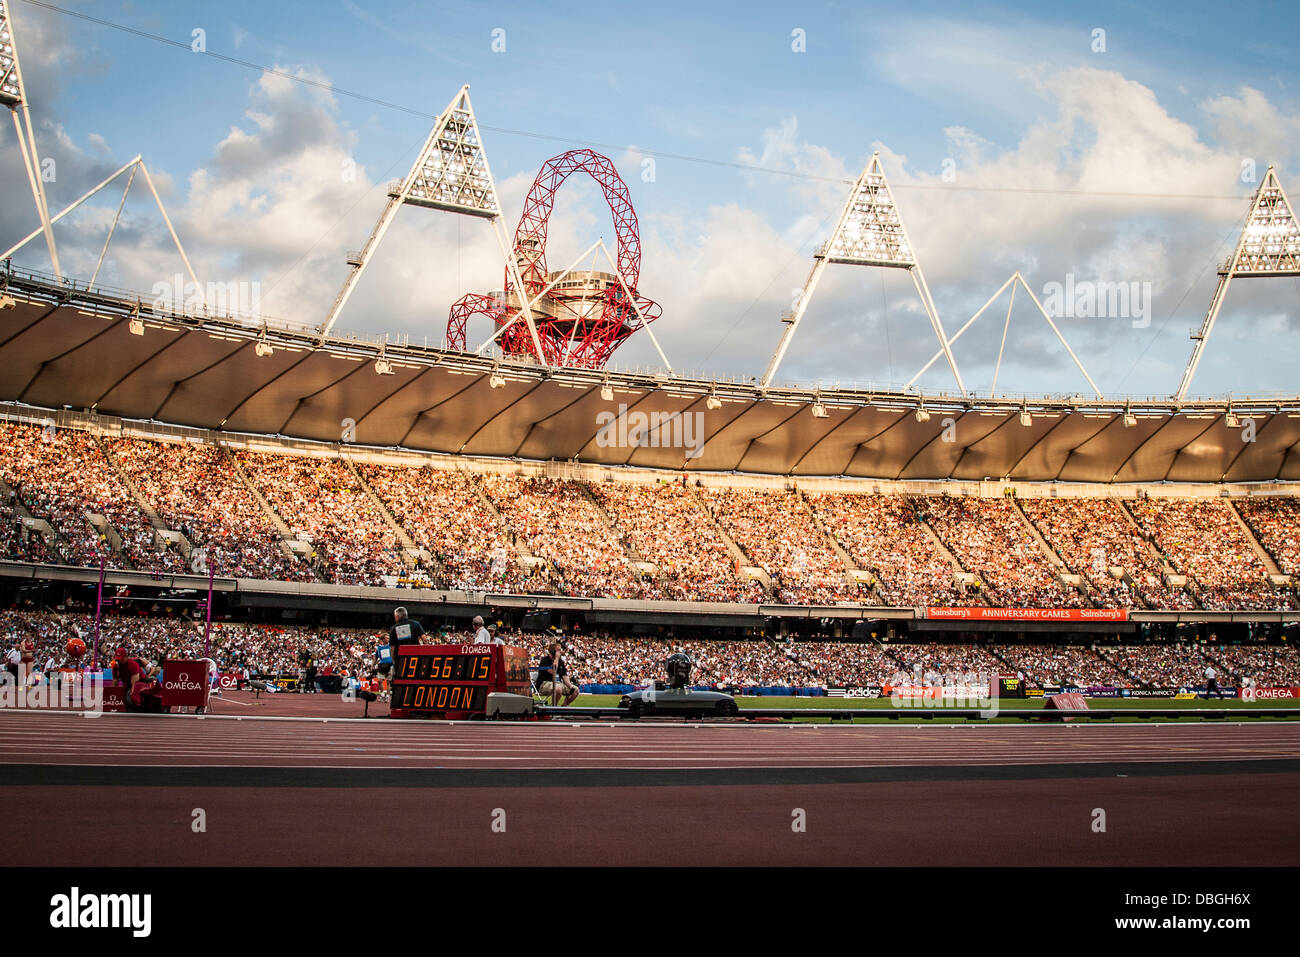 Mittal Orbit in background, Olympic Stadium, sunset over Olympic Stadium, London, Anniversary Games, Diamond League, - Stock Image